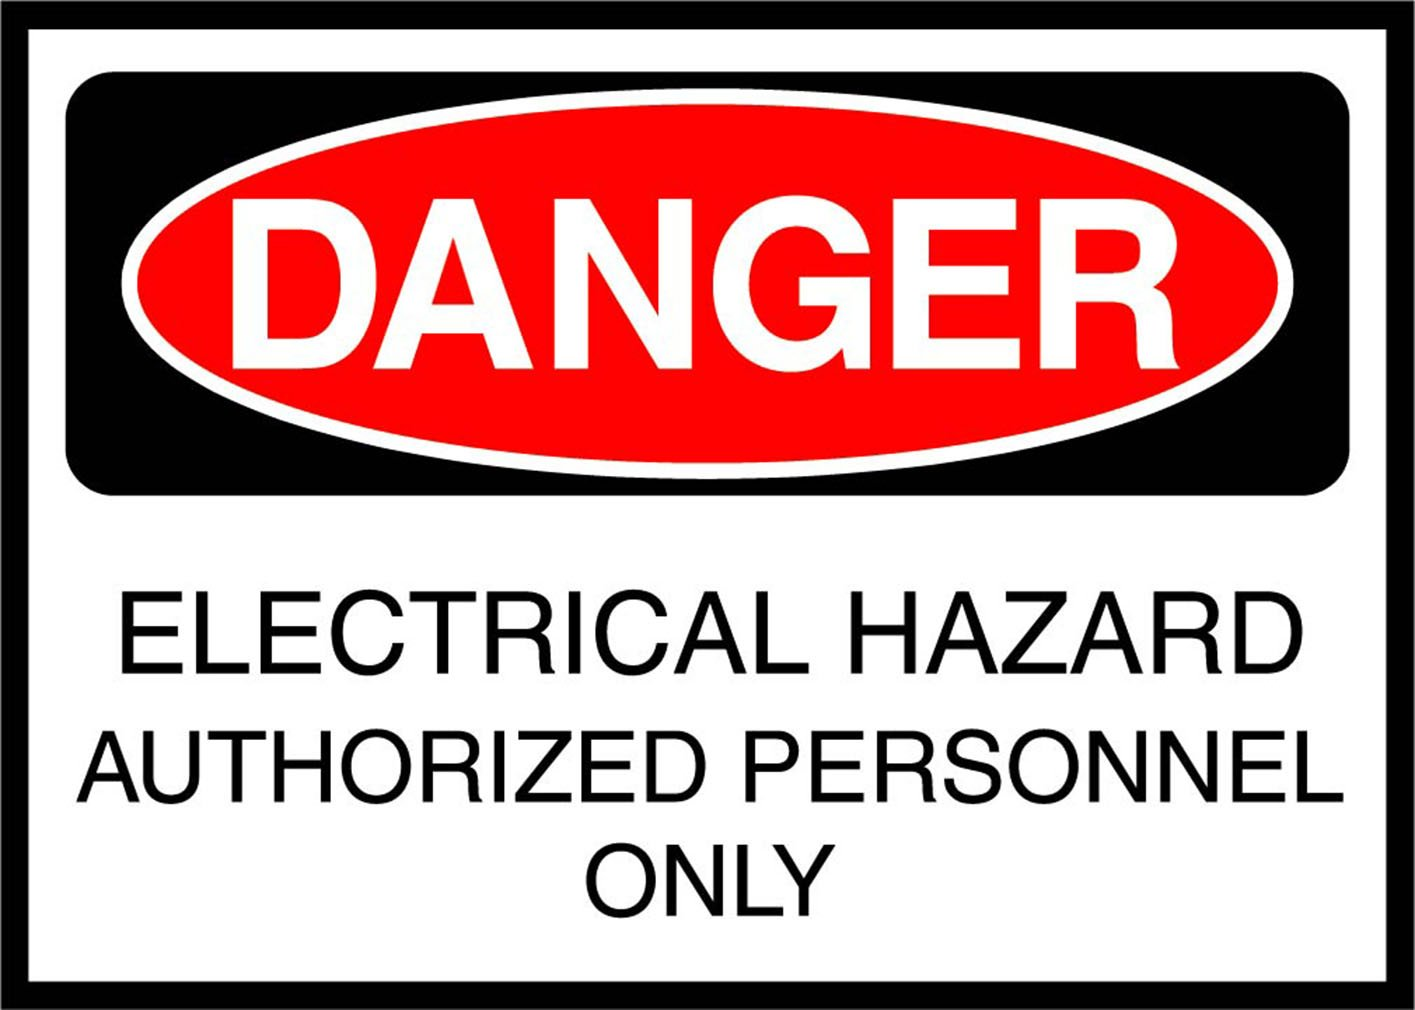 Electrical Hazard Authorized Personnel Only Danger OSHA / ANSI LABEL DECAL STICKER 10 inches x 7 inches